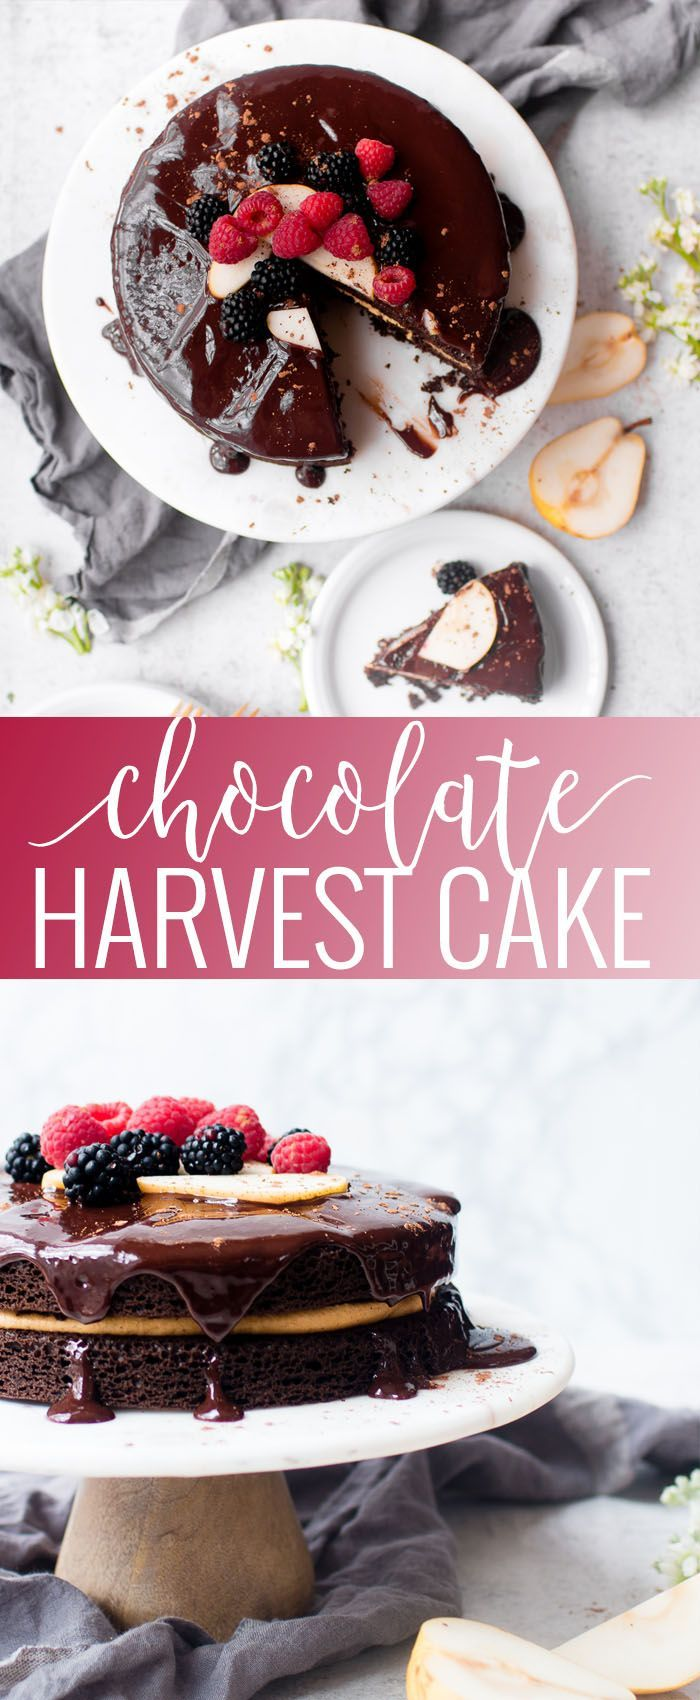 Chocolate Harvest Cake | fall cake recipes | fall fruit recipes | recipes using fall fruits | harvest dessert recipes | fall dessert recipes | chocolate cake recipes || Oh So Delicioso #falldesserts #harvestcake